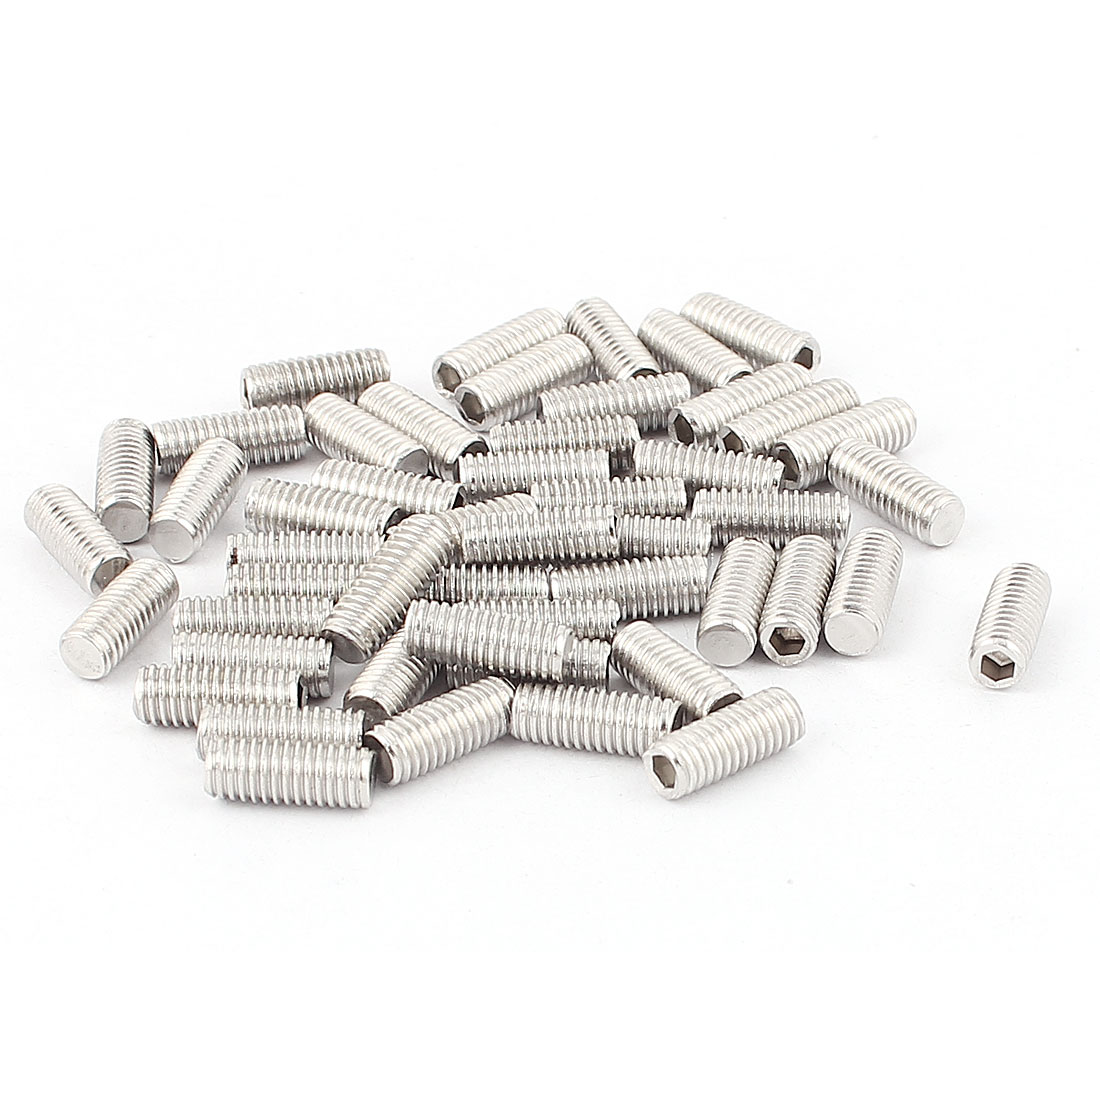 50pcs 304 Stainless Steel M5 Thread Hex Socket Flat Point Set Grub Screws